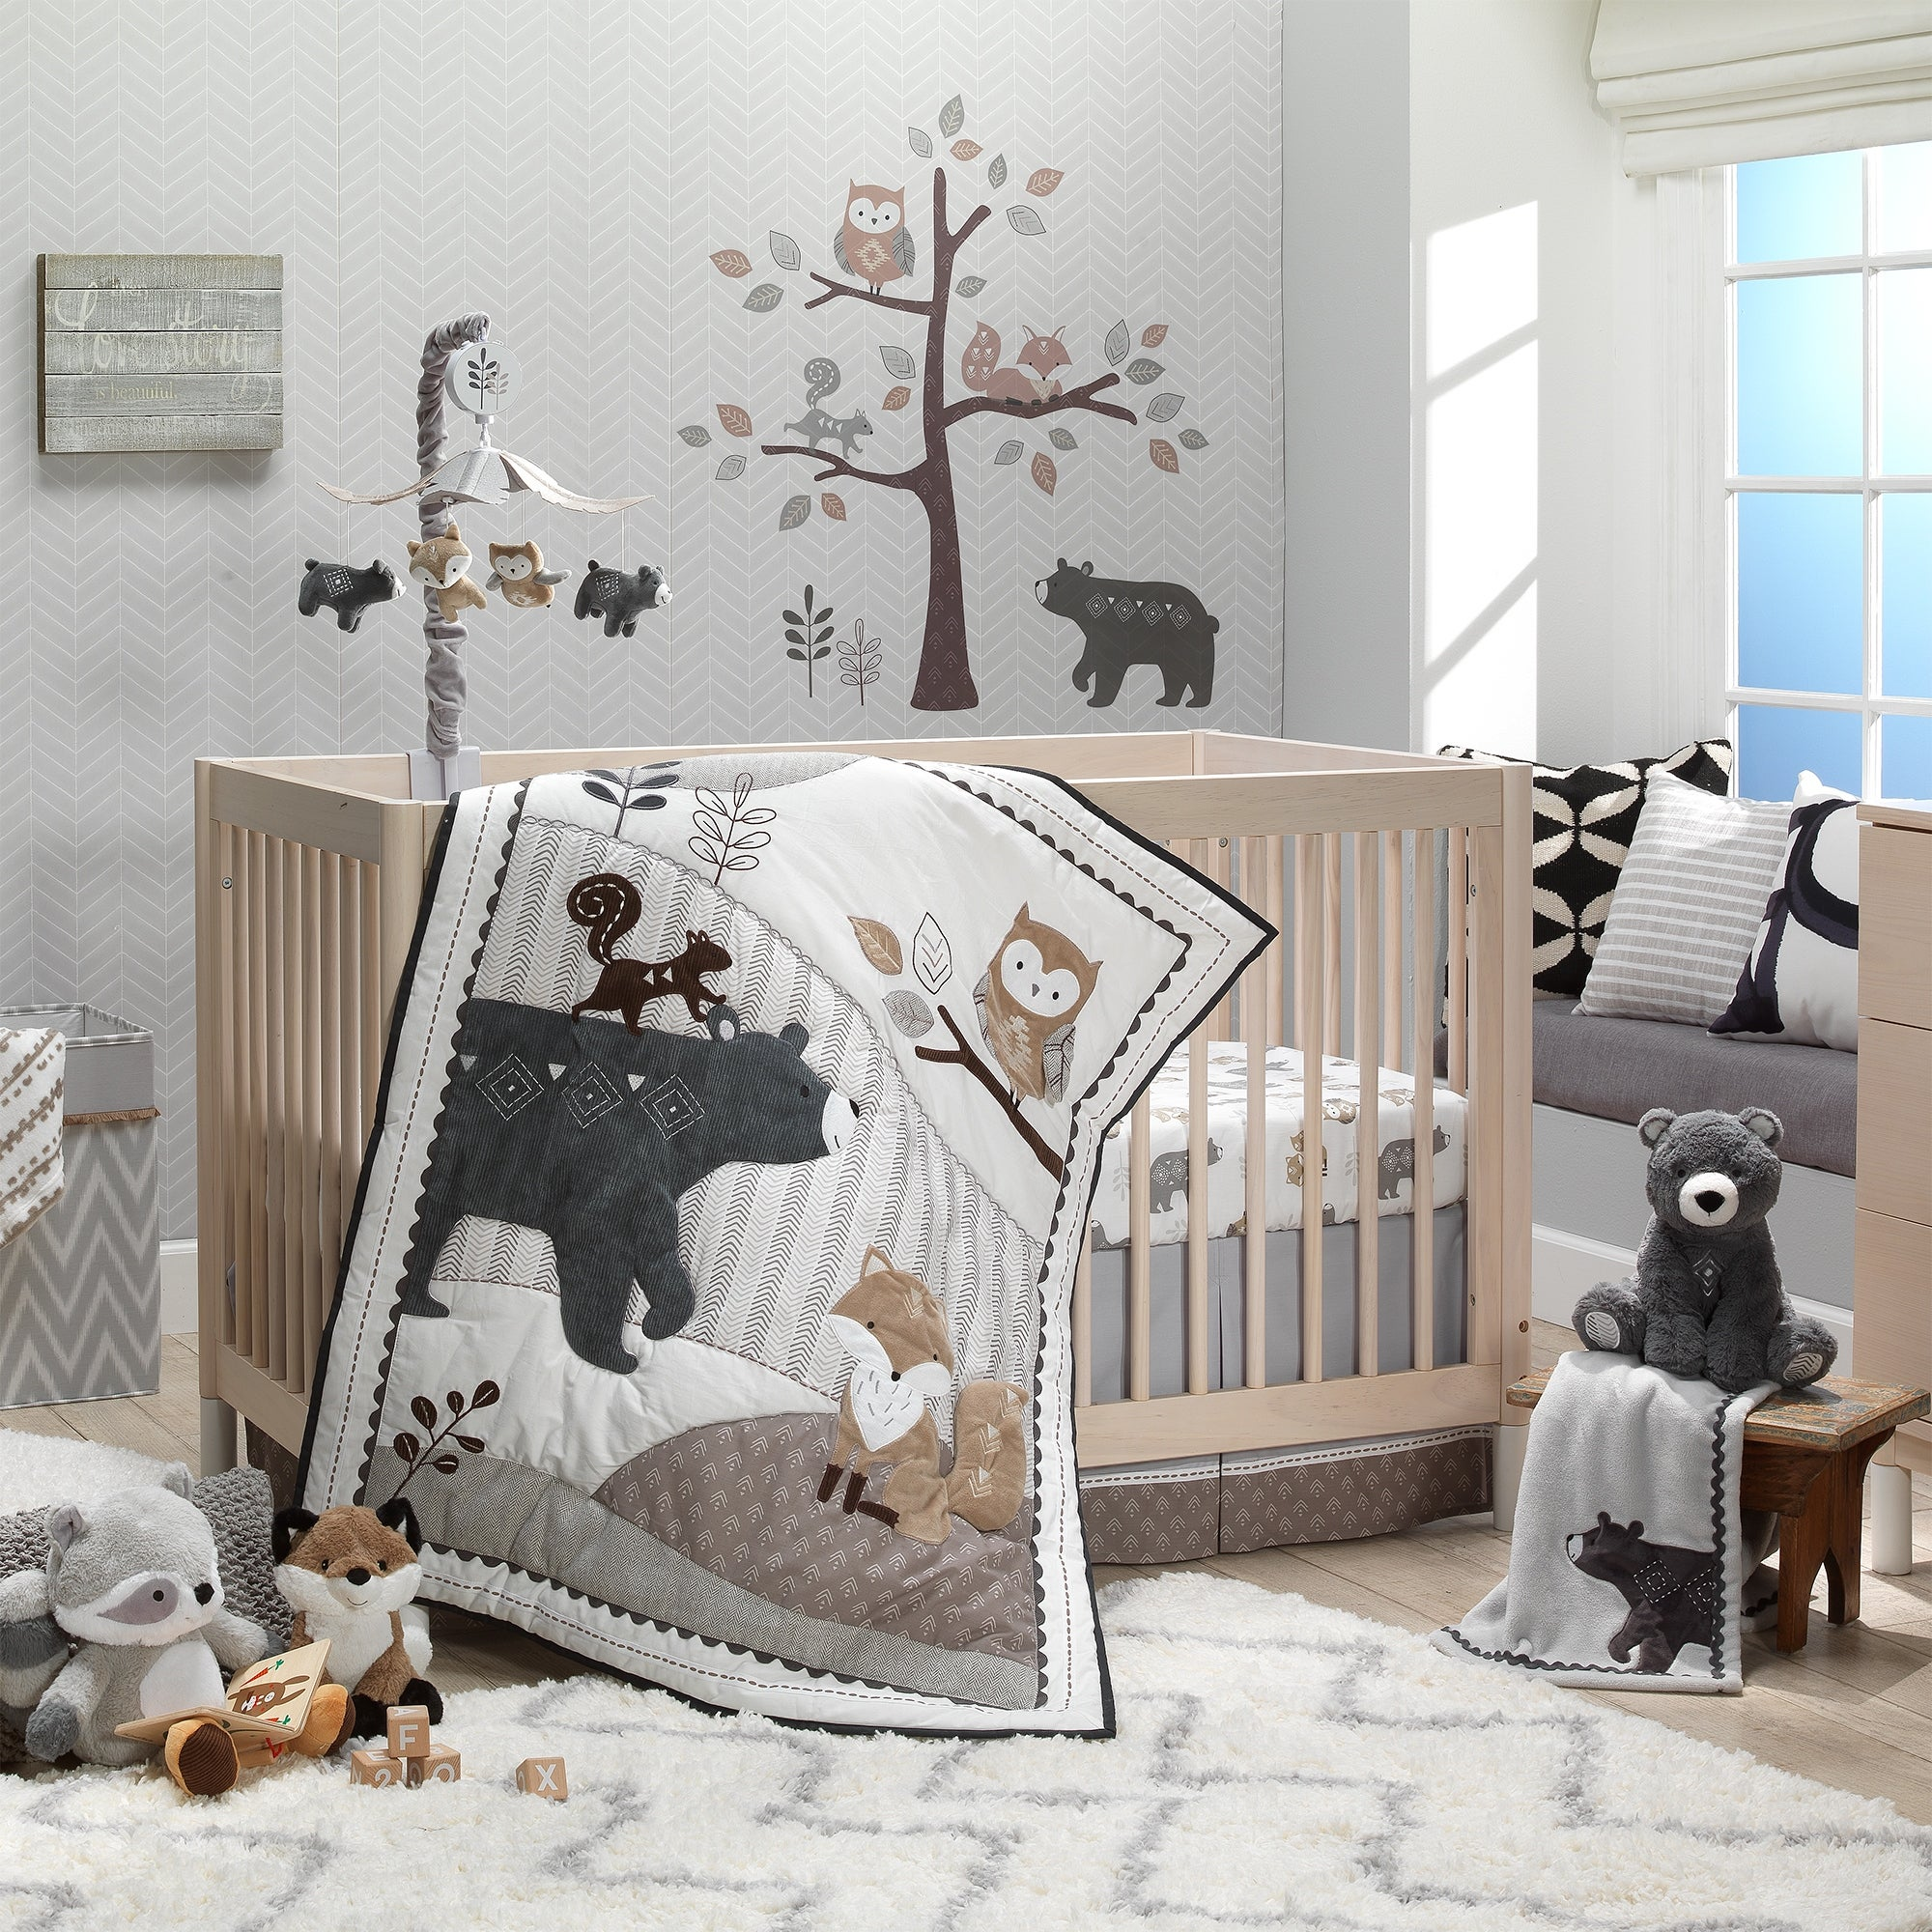 Shop Lambs Ivy Woodland Forest Animal Nursery 5 Piece Baby Crib